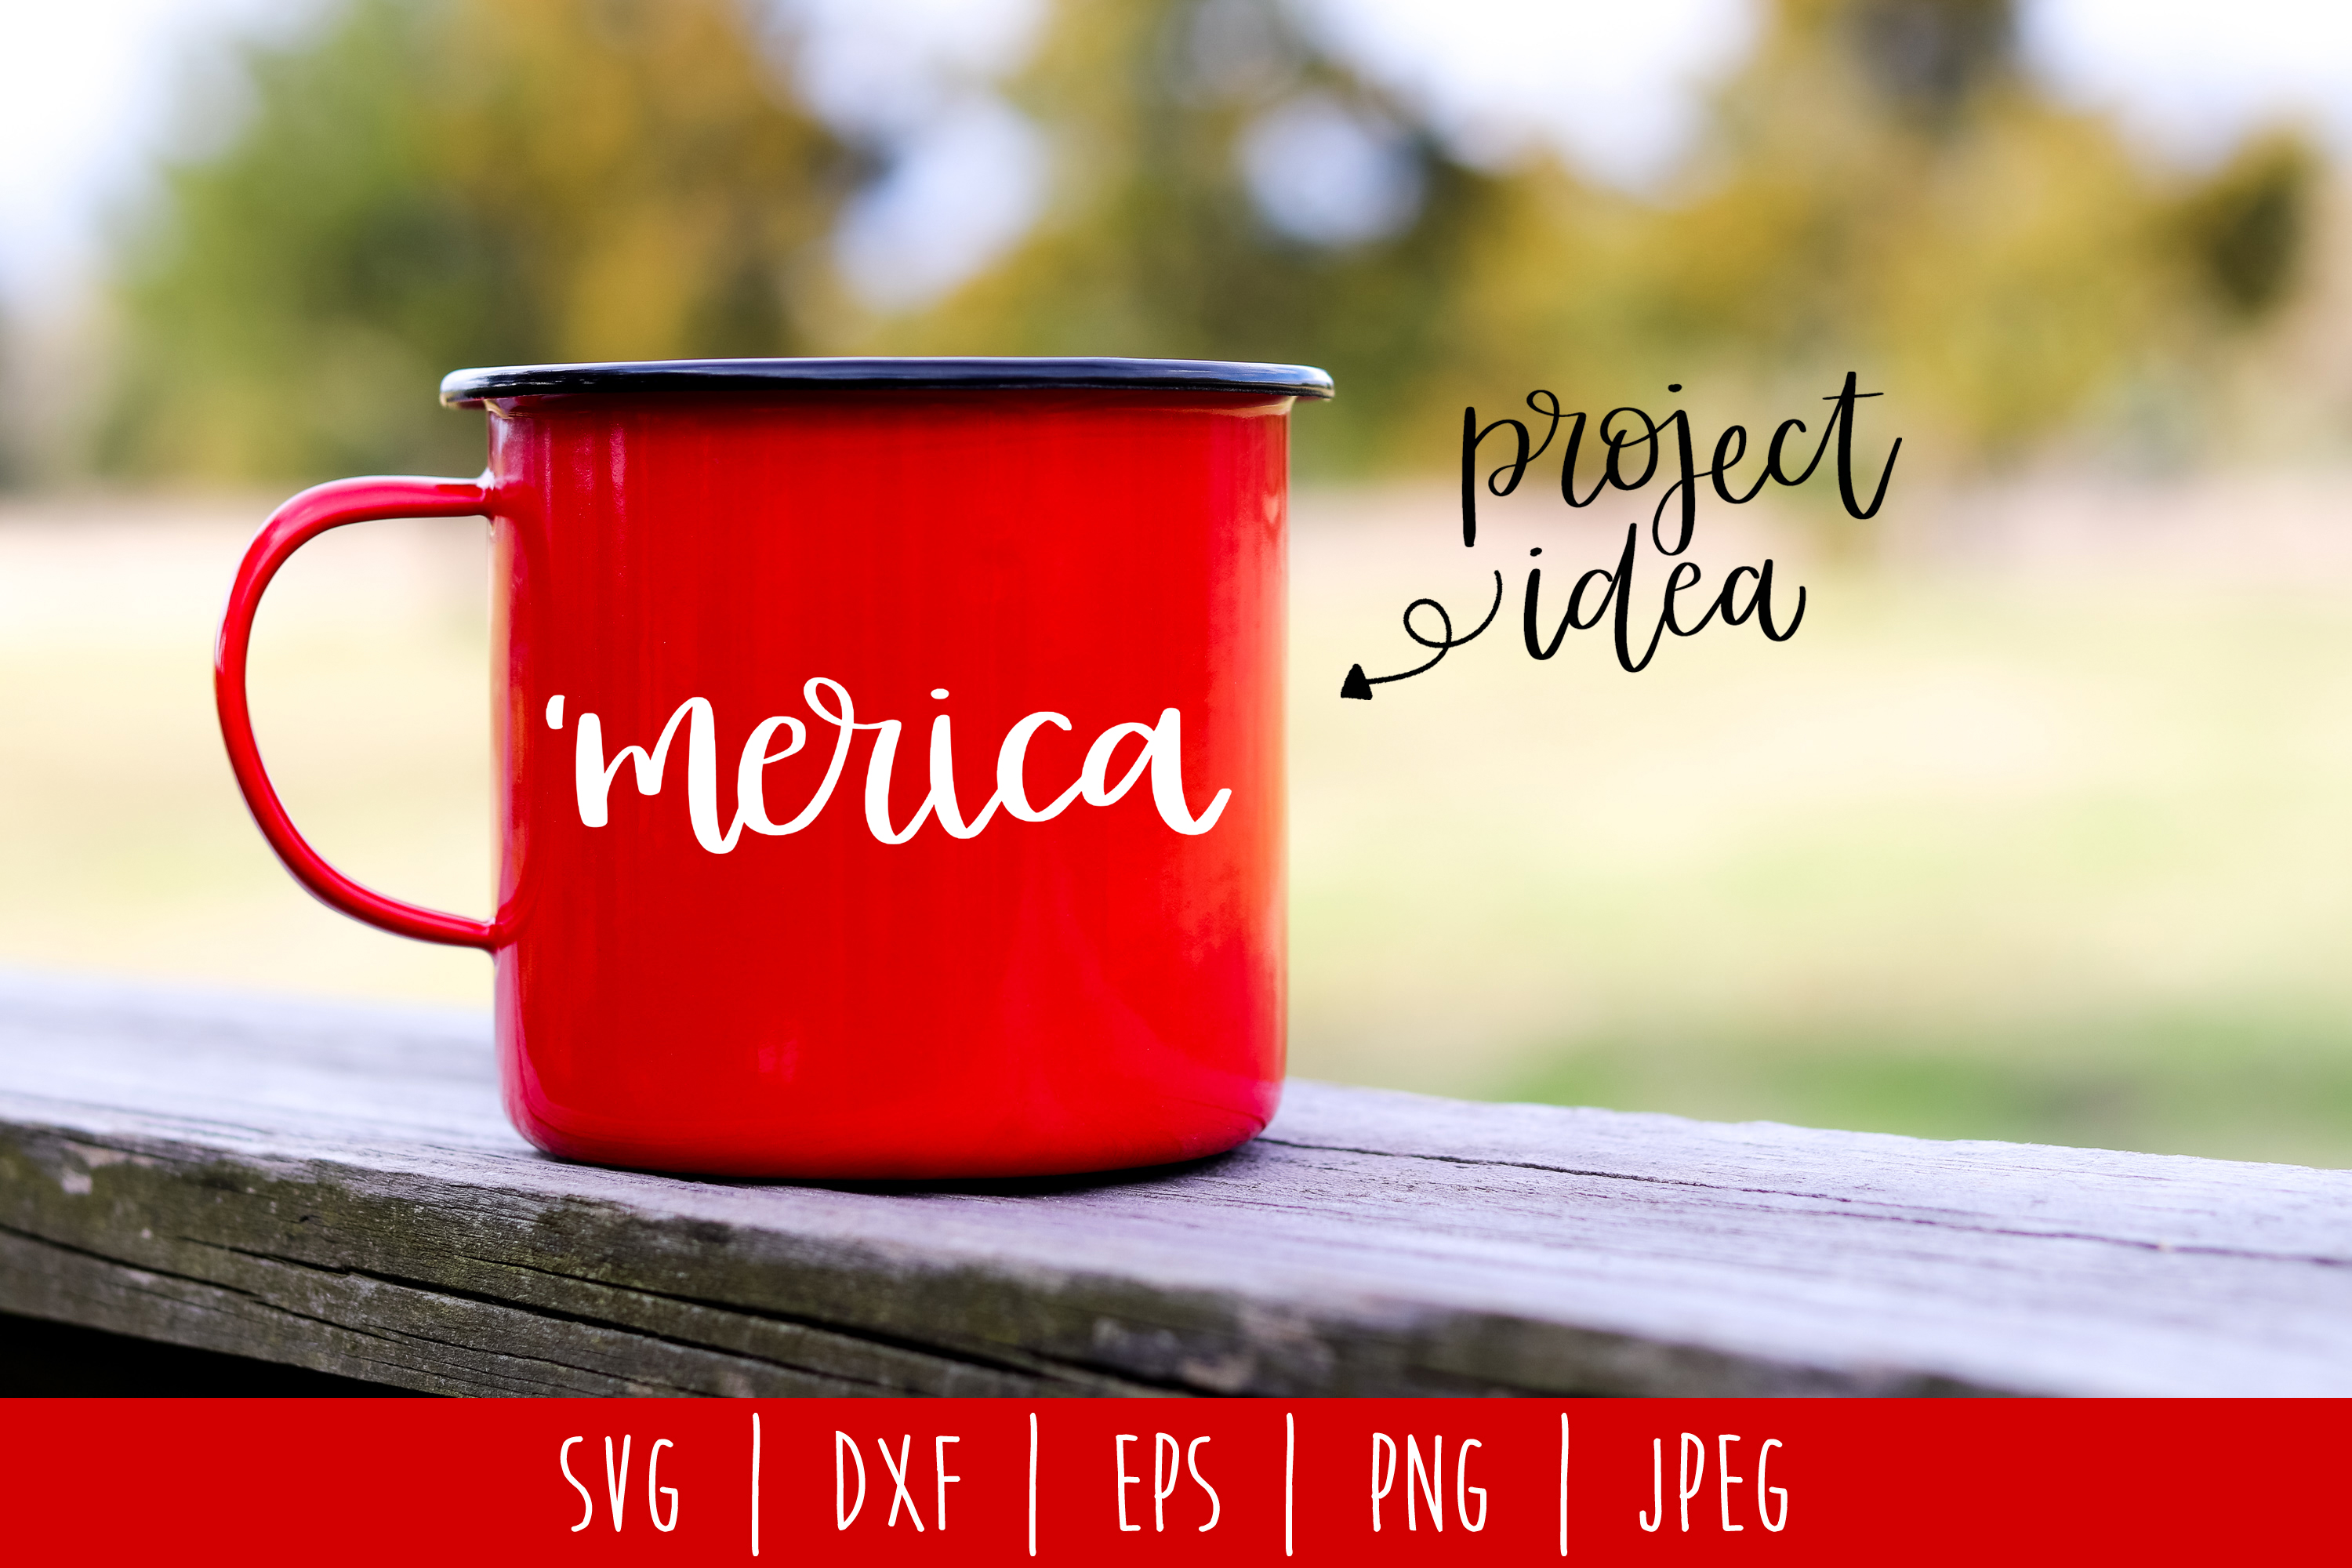 'Merica SVG, DXF, EPS, PNG JPEG example image 1